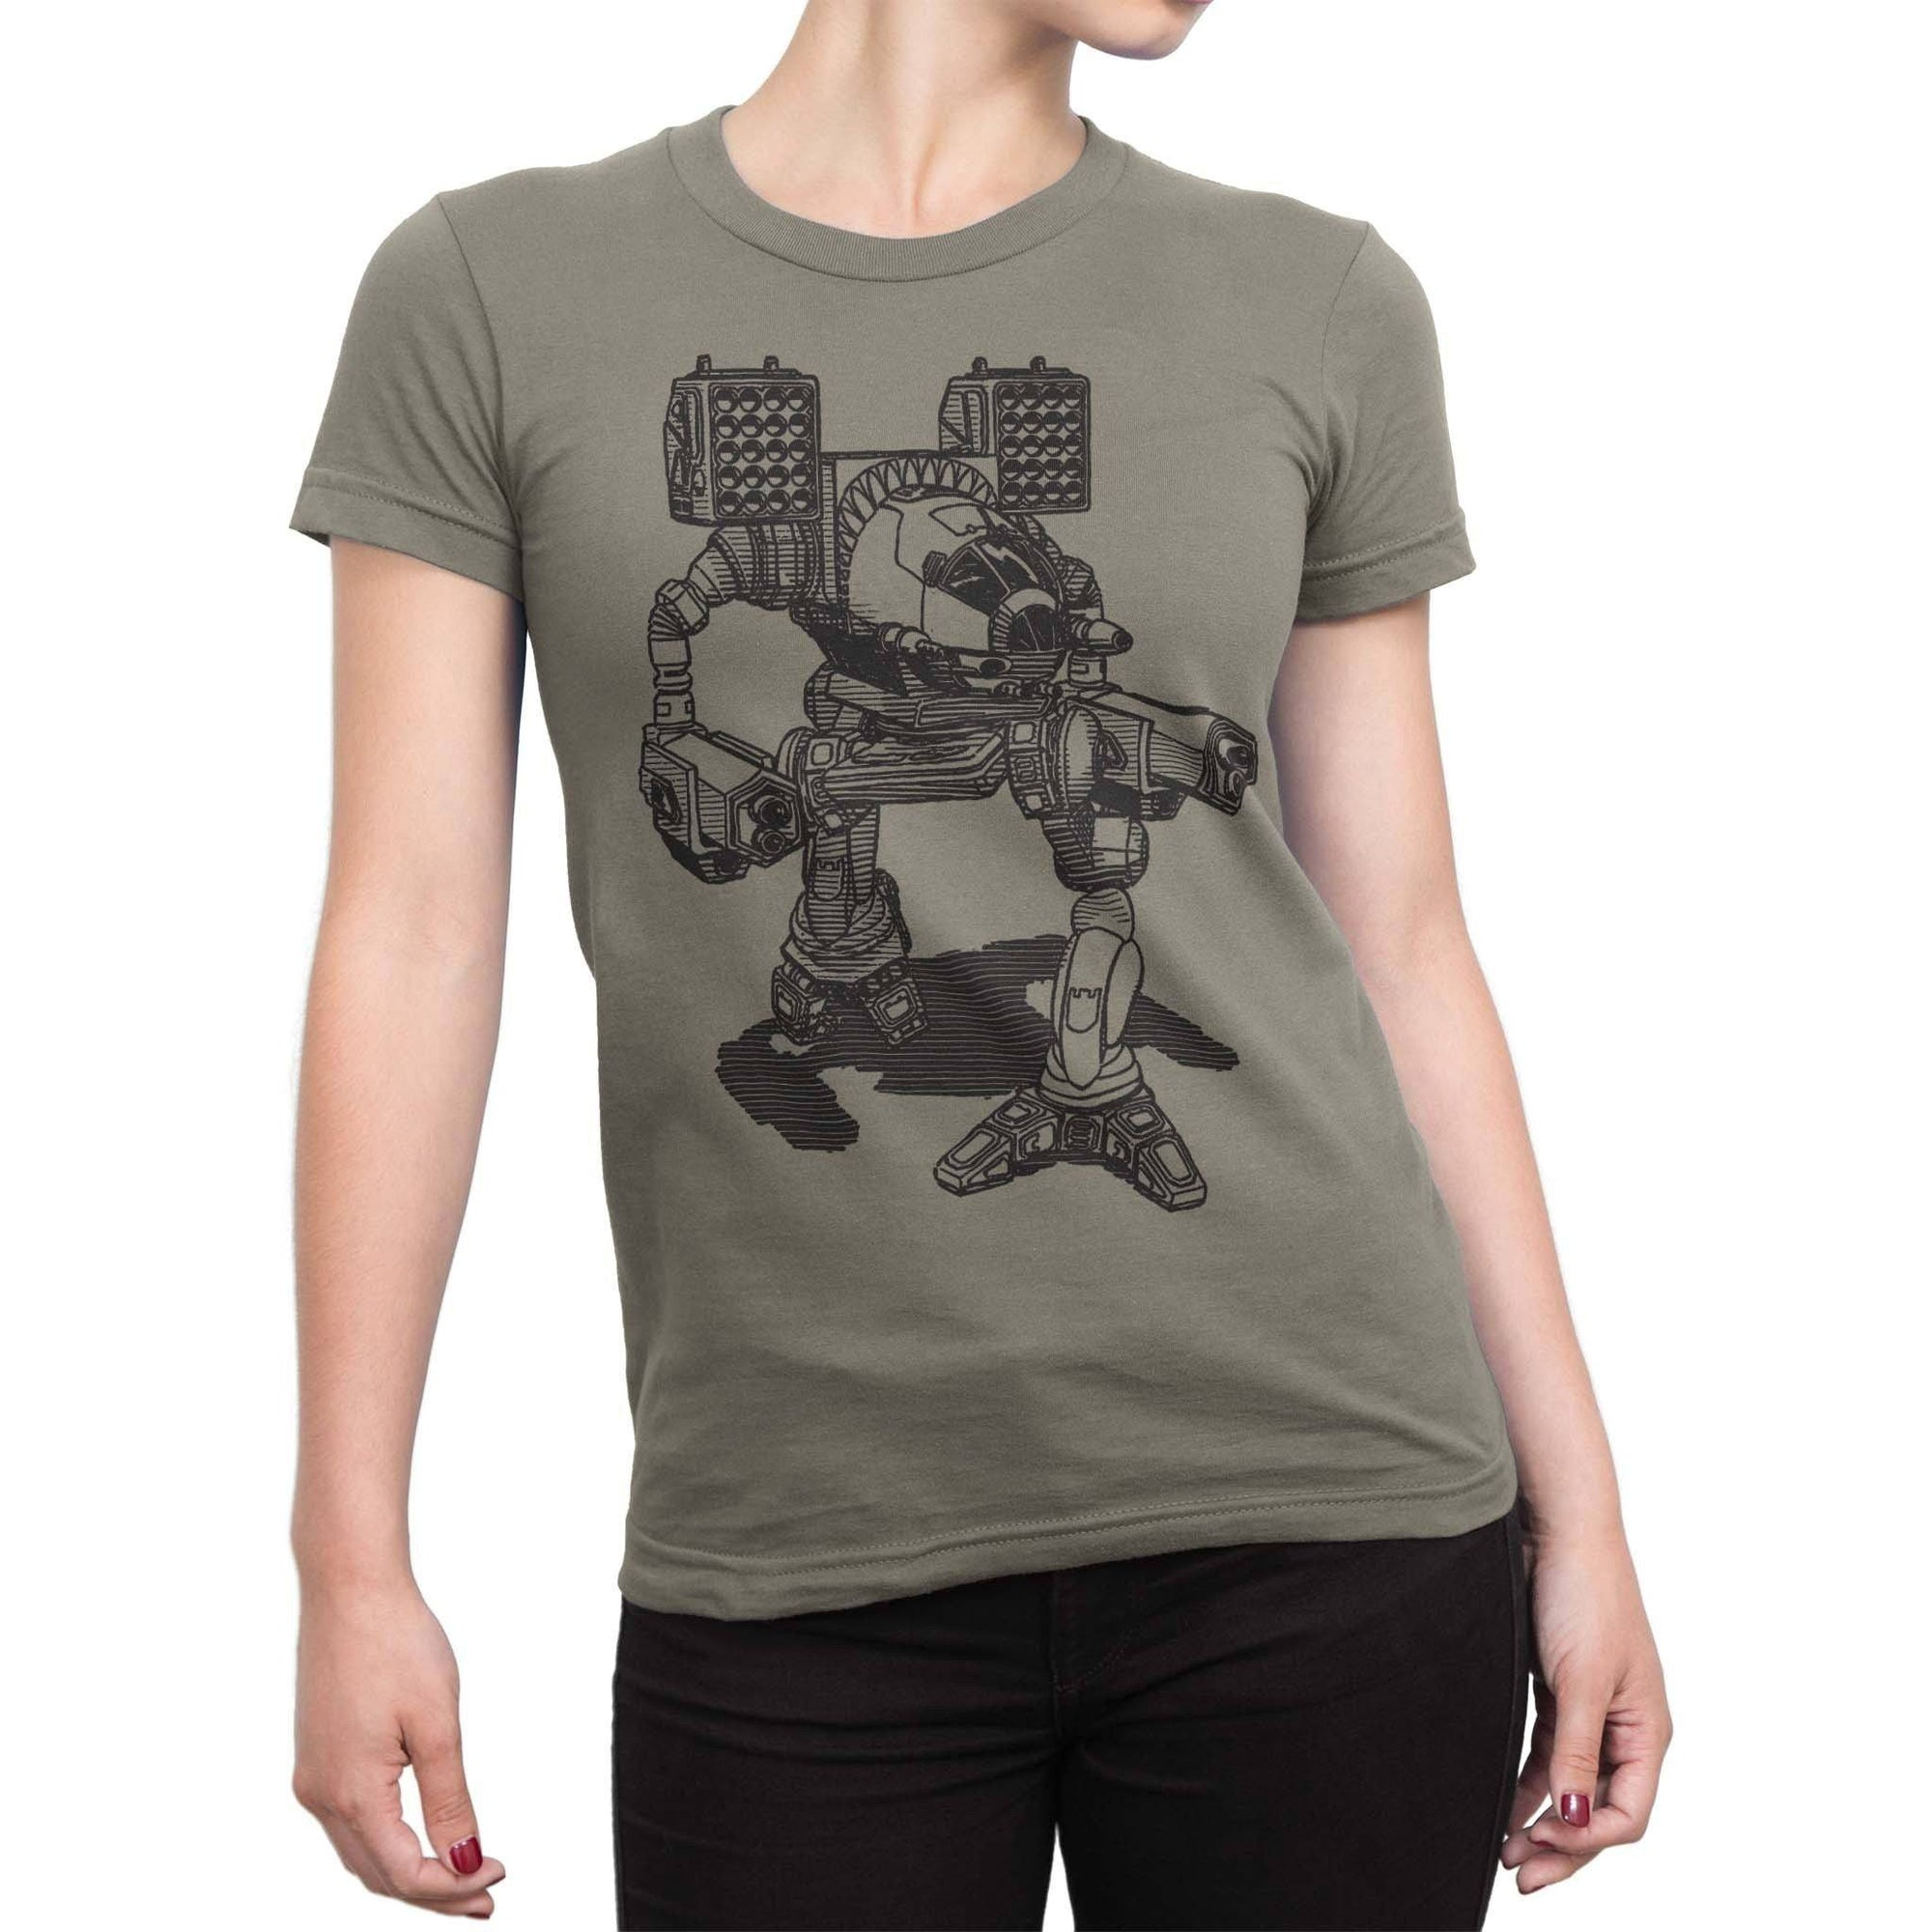 Battlemech Women's Shirt-Womens Shirt-Shirtasaurus-S-Pebble Brown-Shirtasaurus